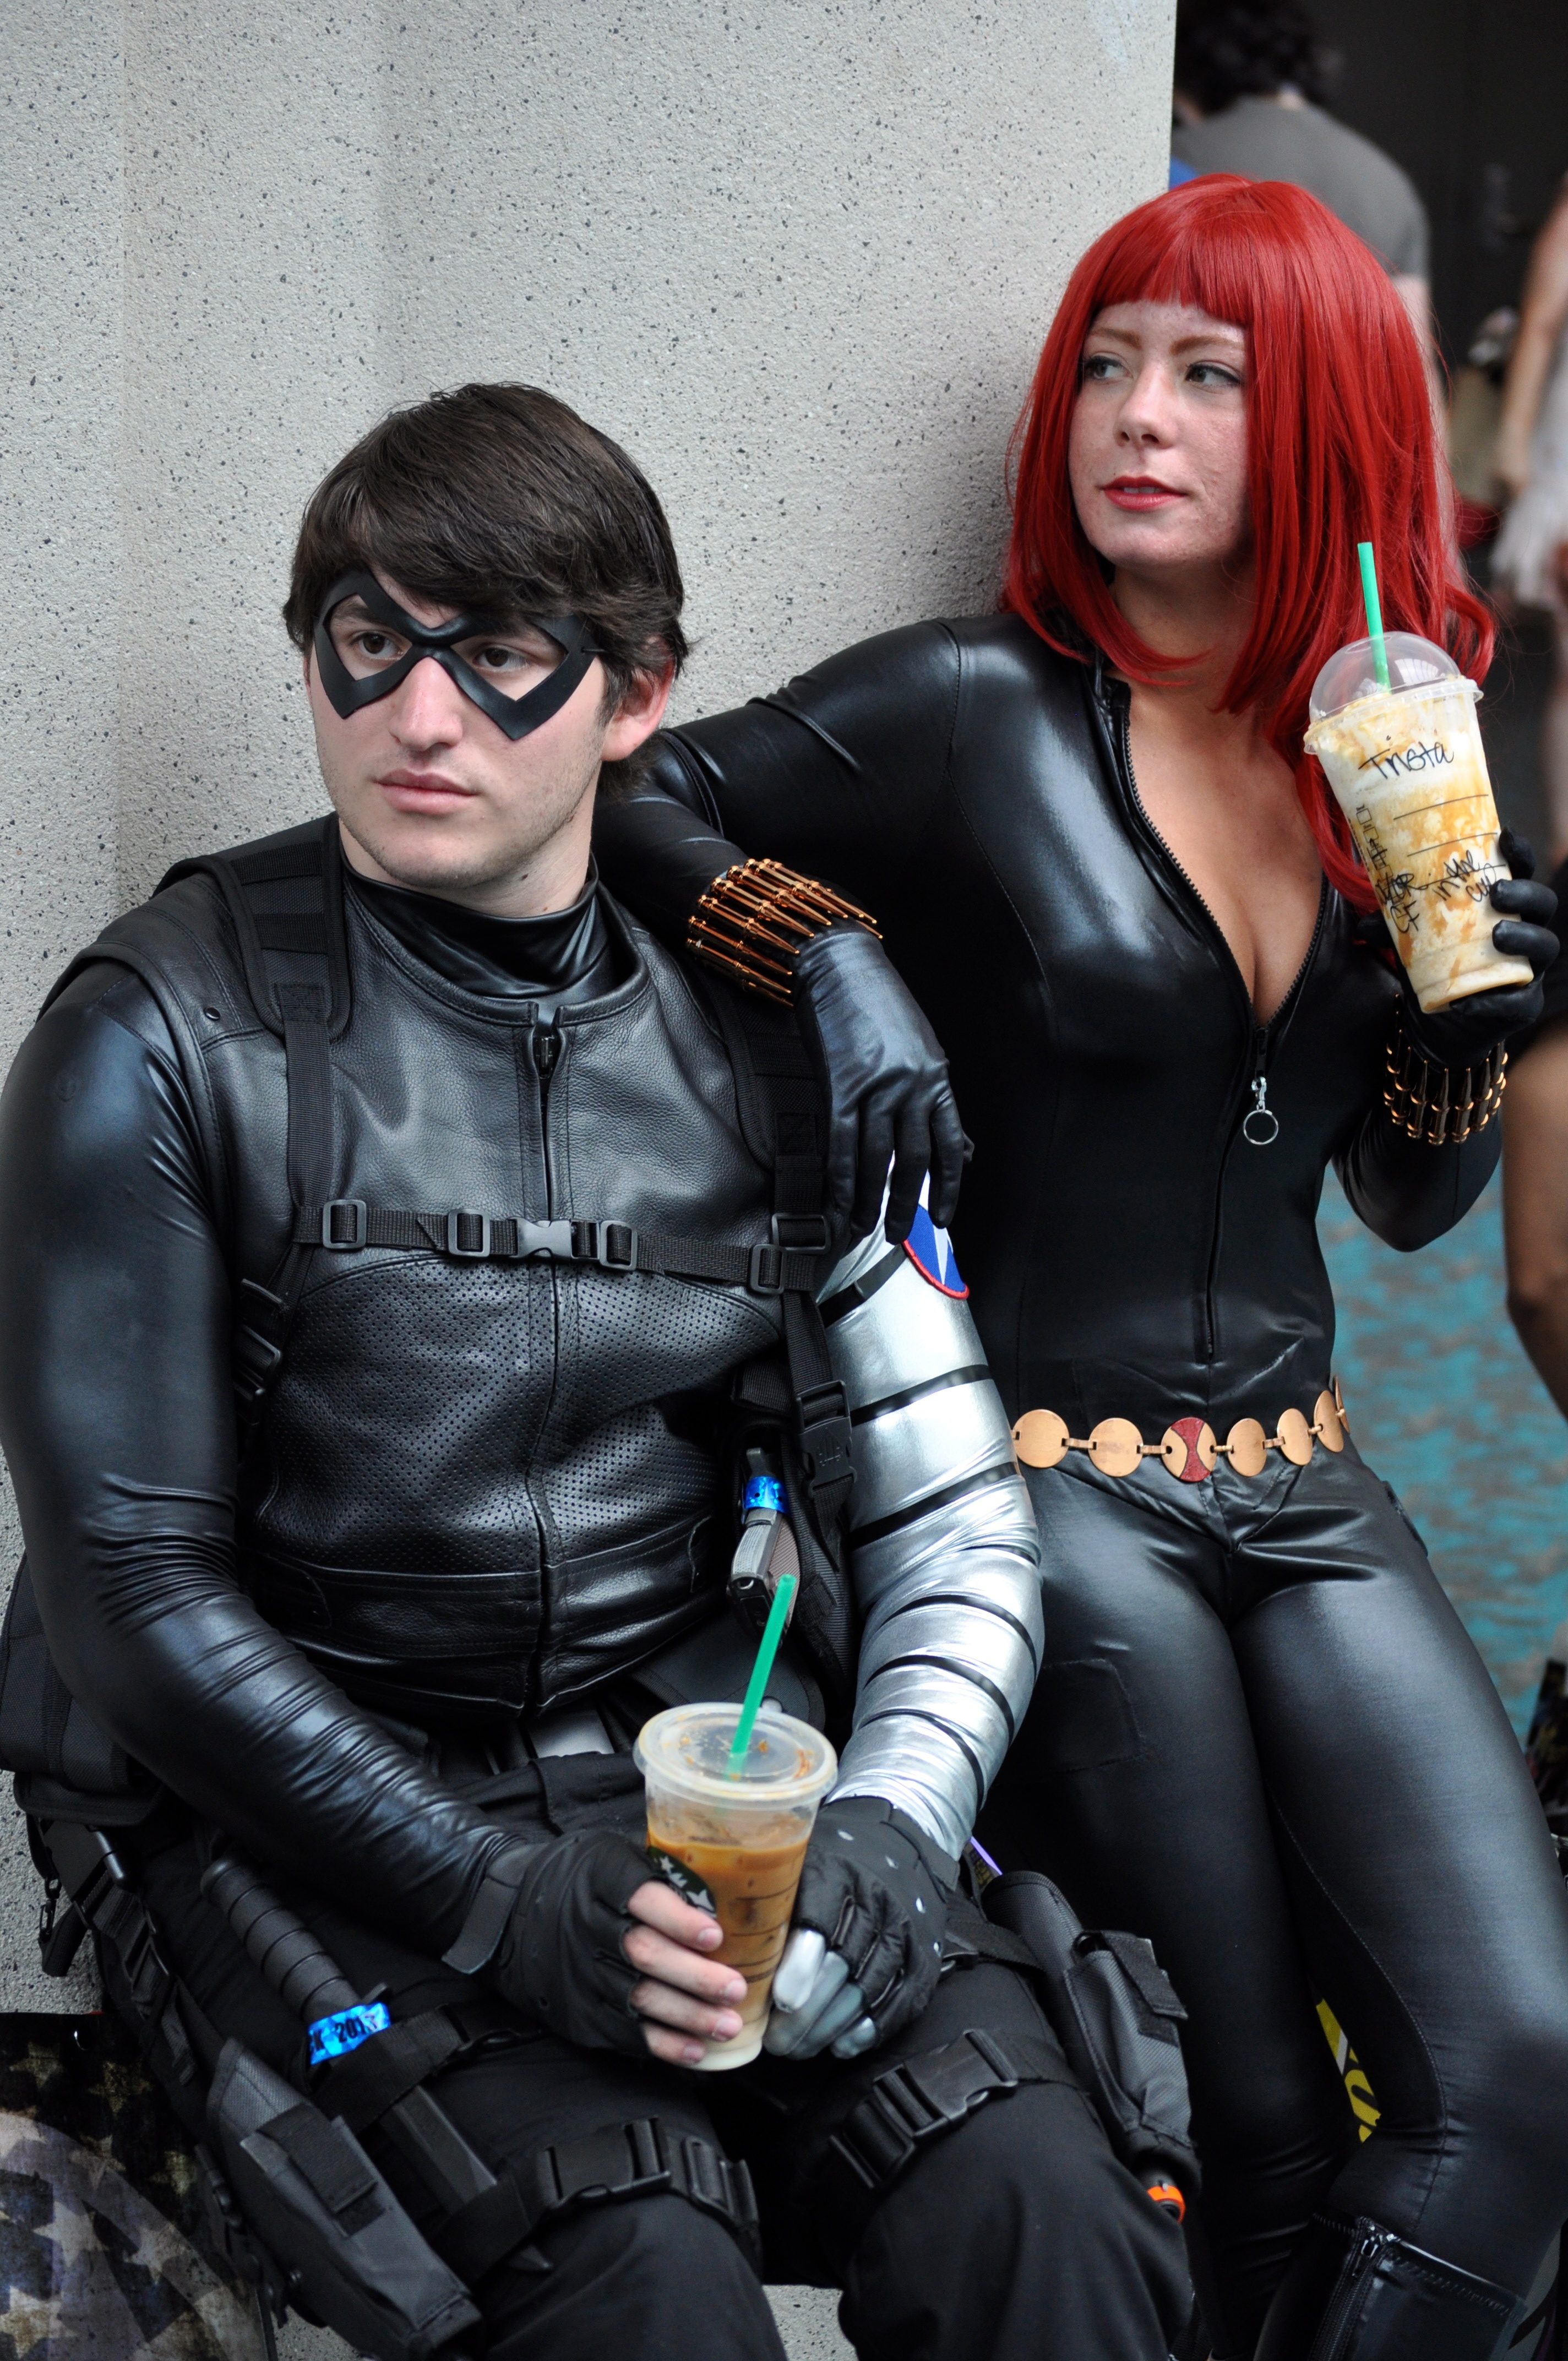 File Comic Con 2013 Winter Soldier And Black Widow 9335984158 Jpg Wikimedia Commons